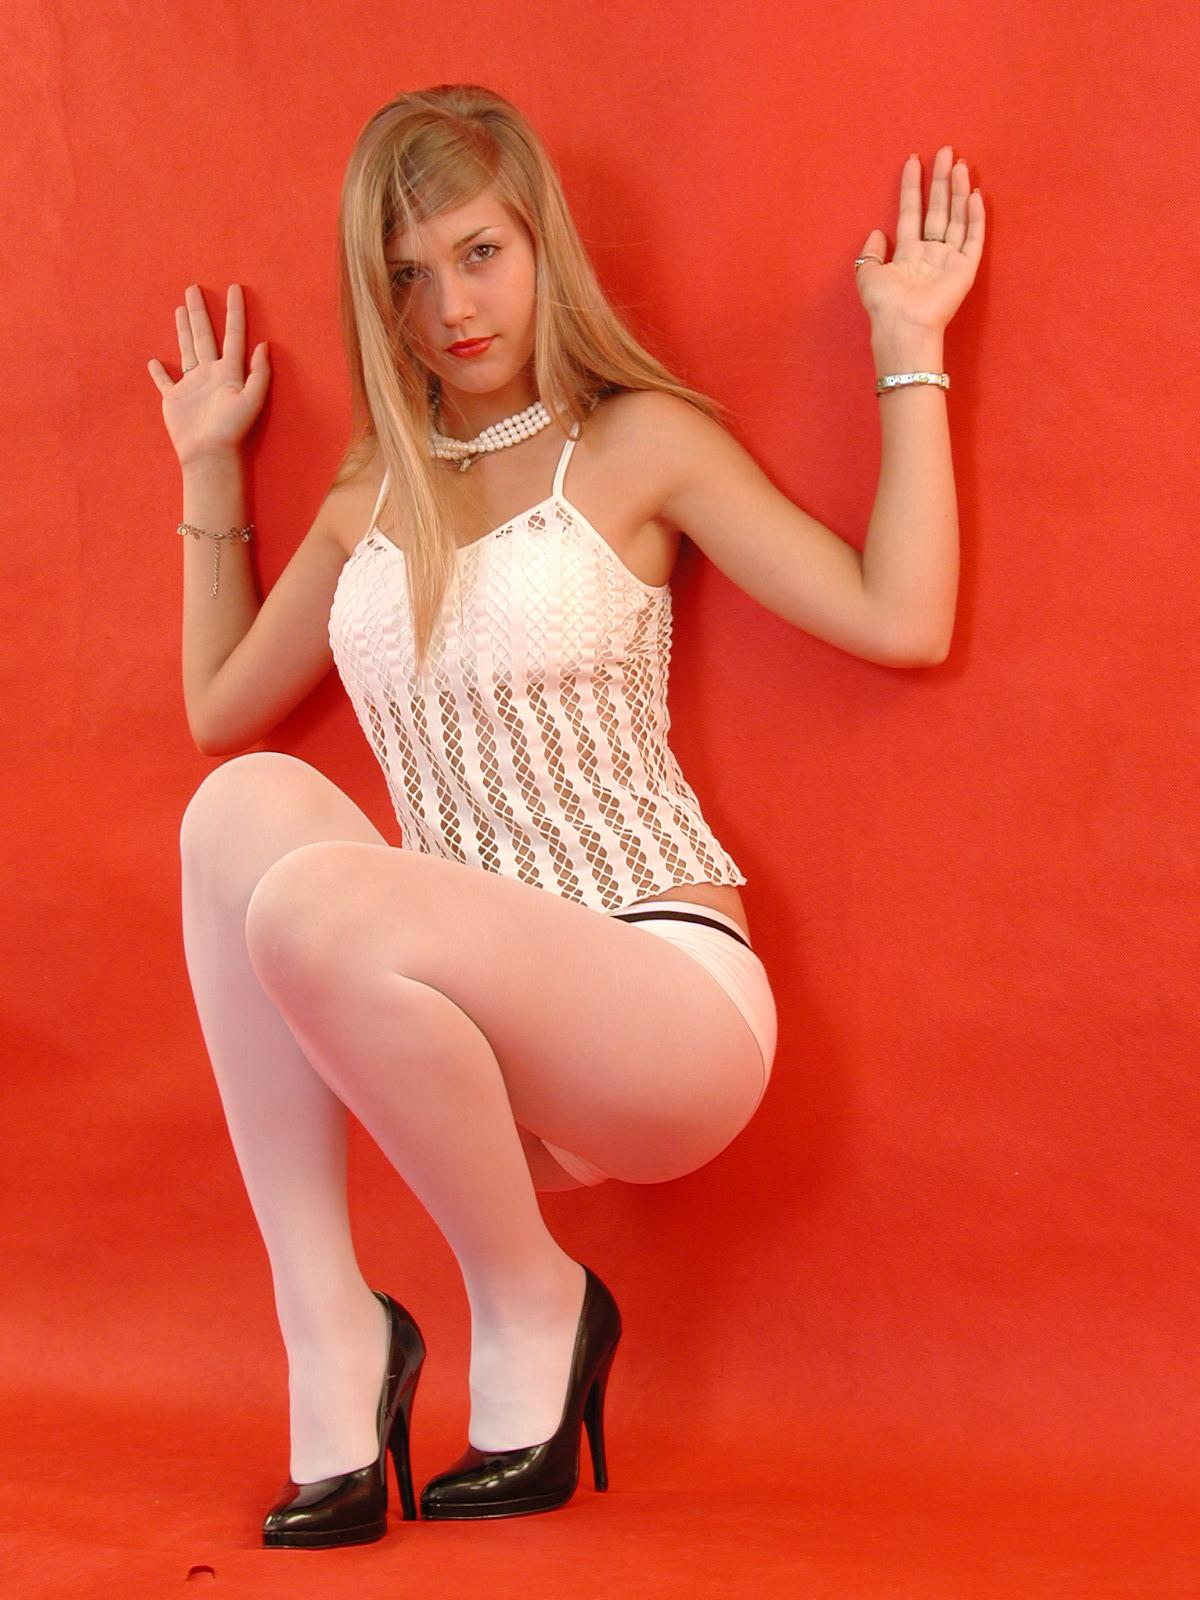 Opinion not Alisa vlad model pantyhose agree with